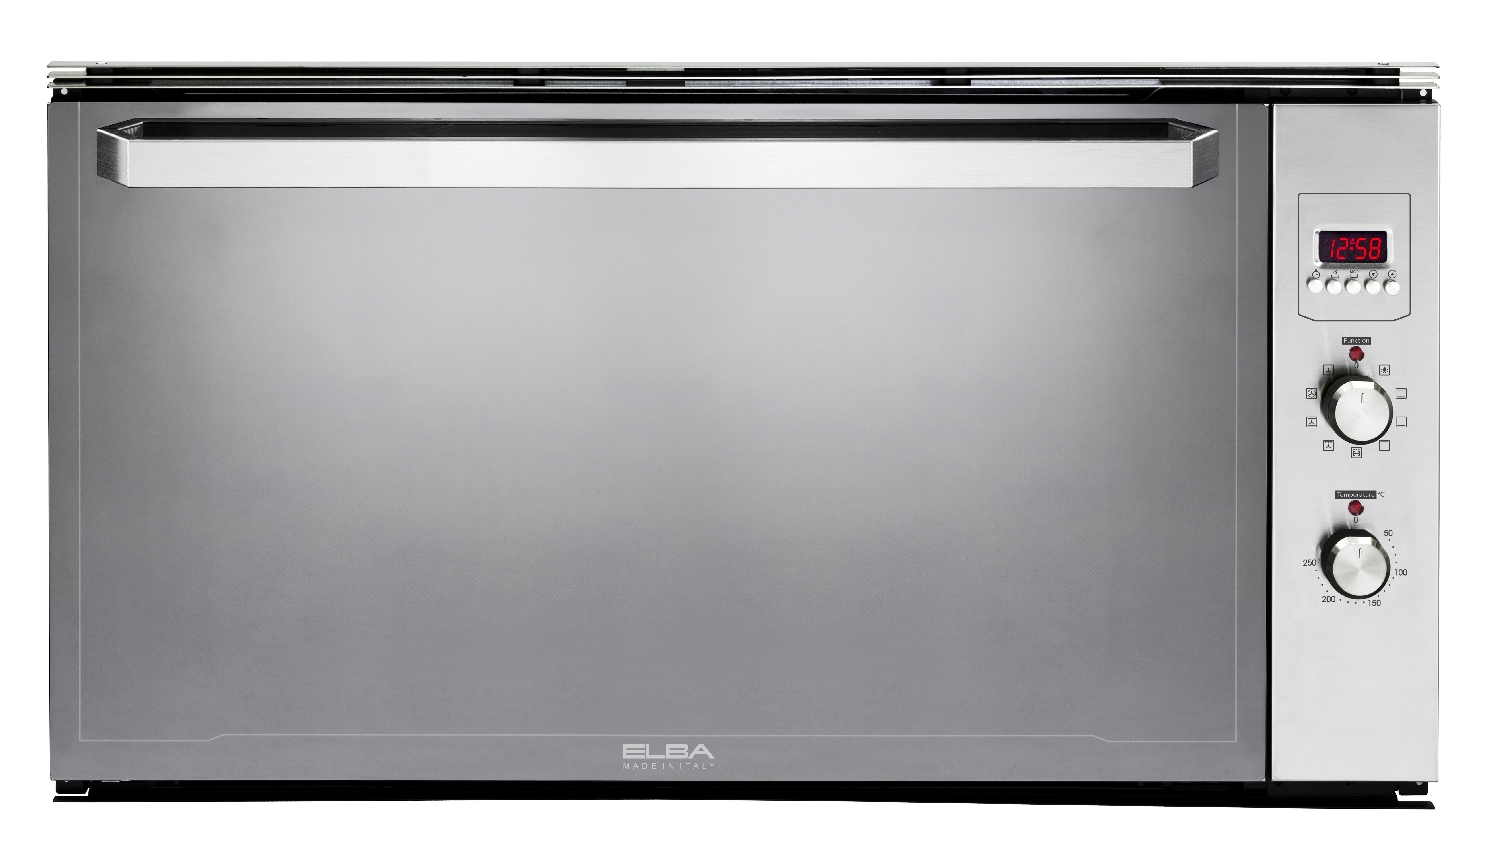 elba-elio-934--90cm-multifunction-electric-oven